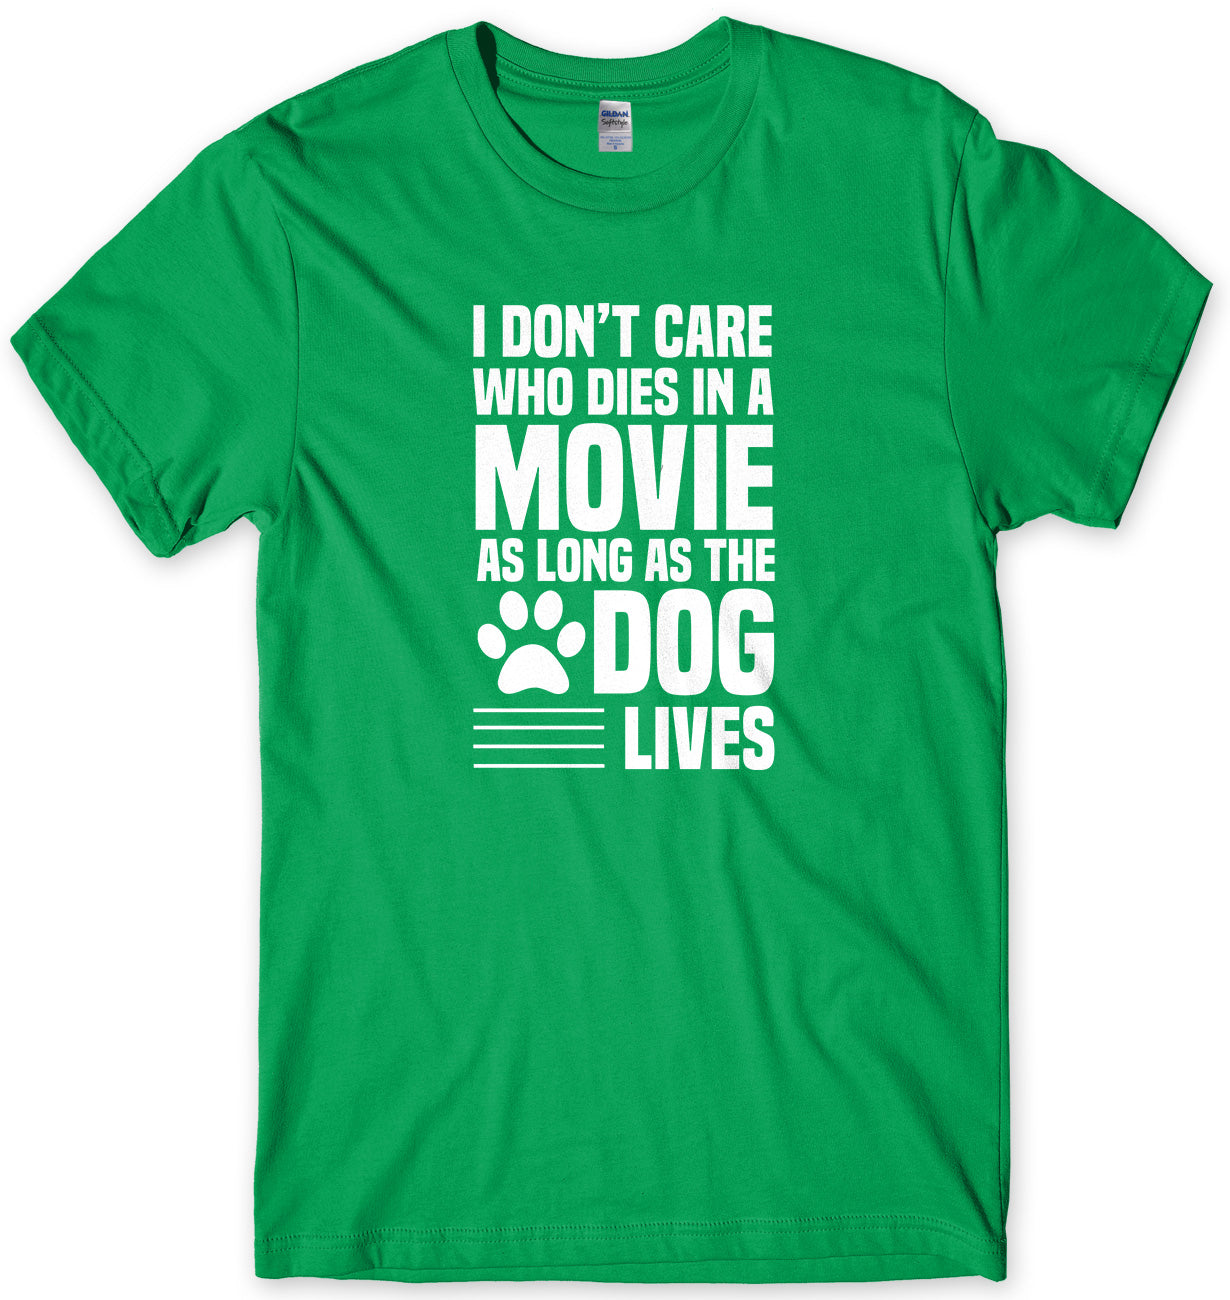 I Don't Care Who Dies In A Movie As Long As The Dog Lives Mens Unisex T-Shirt